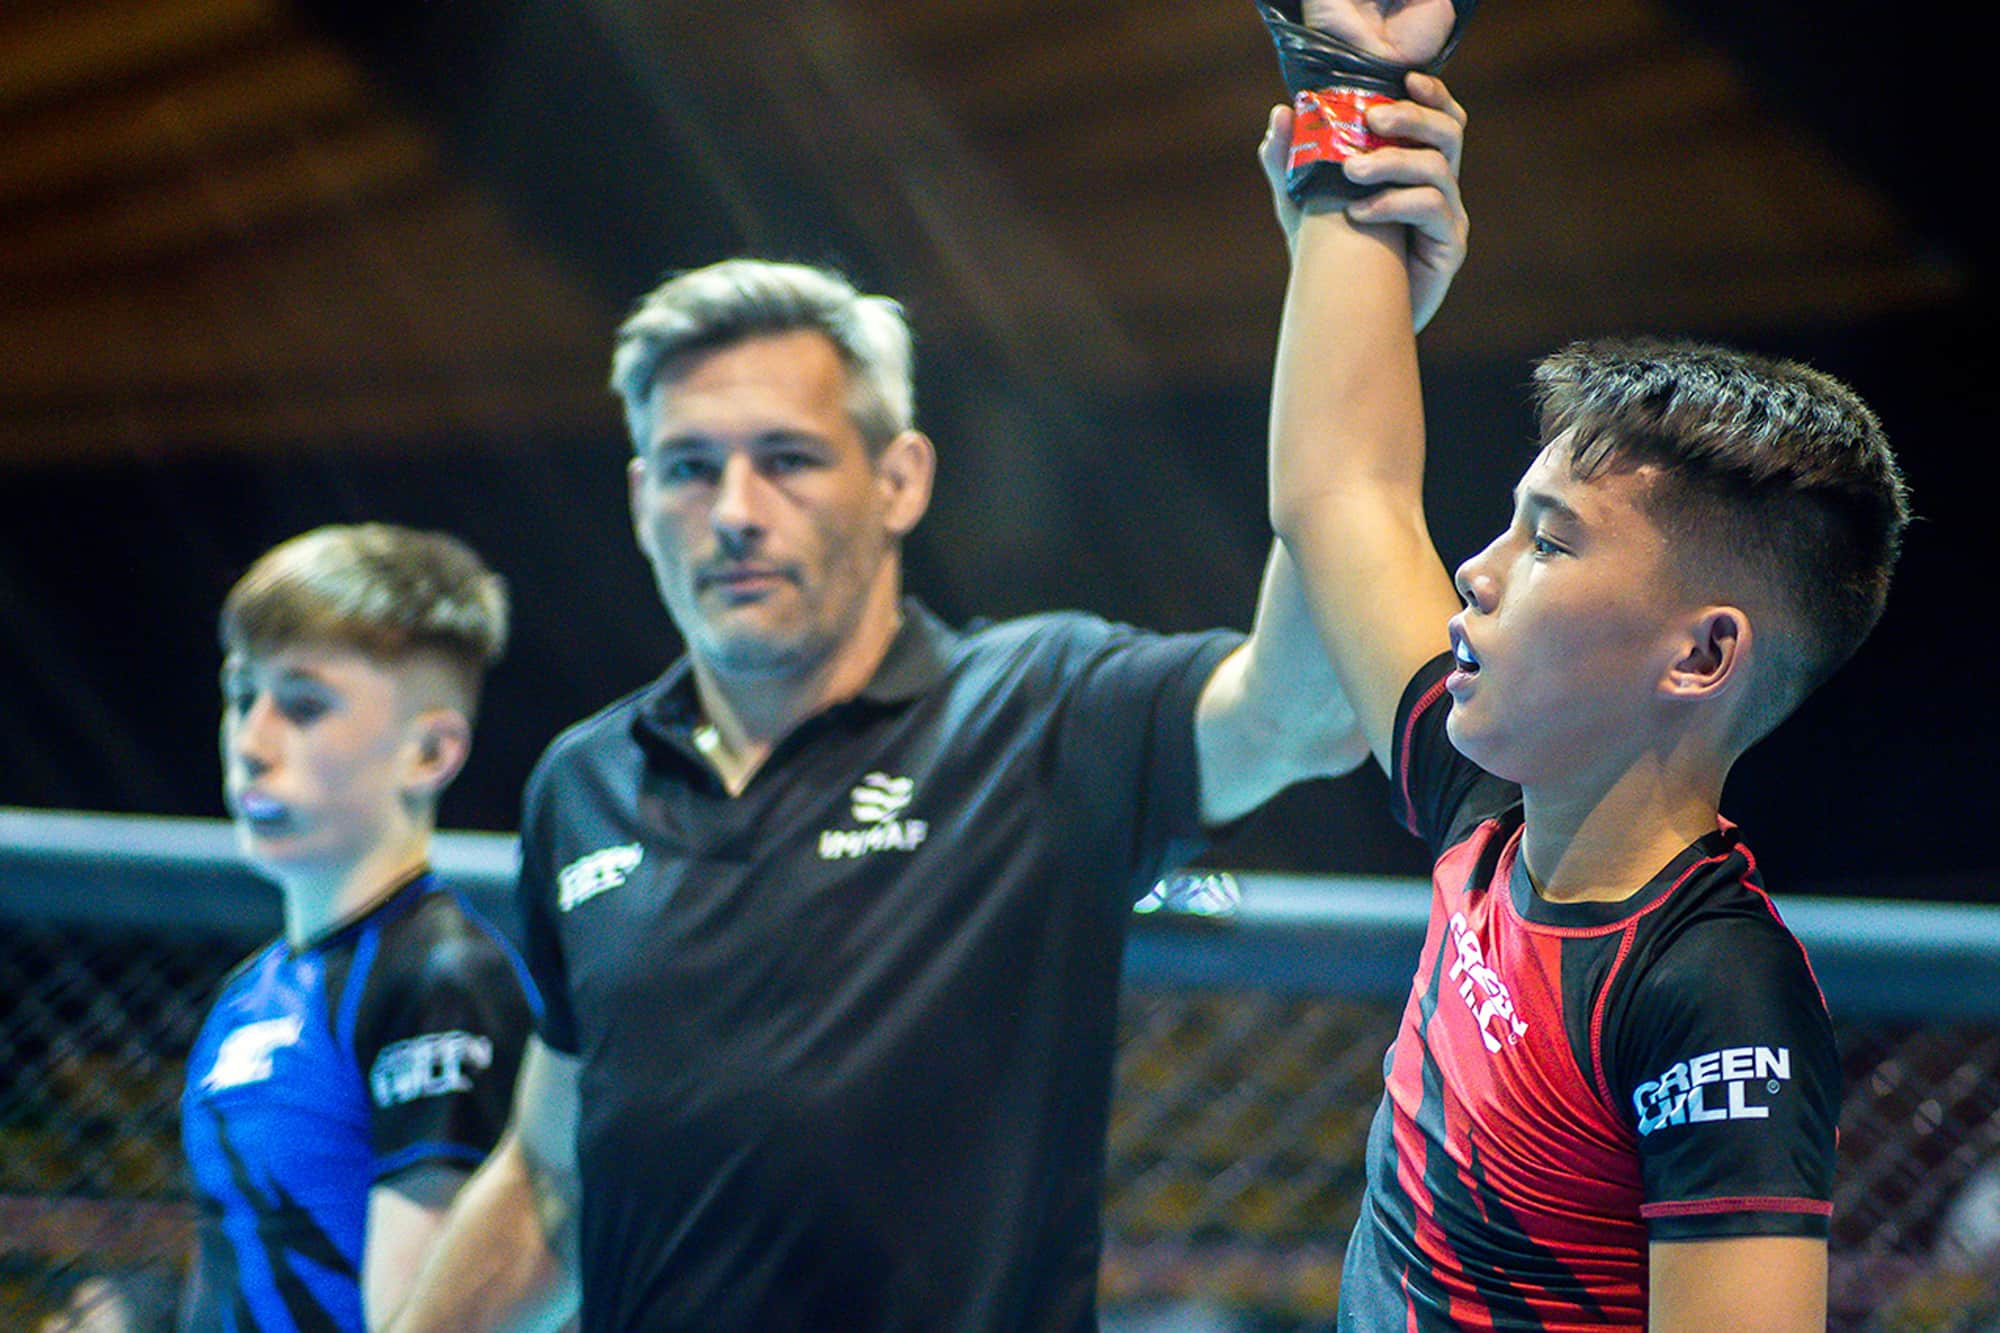 IMMAF Gradings mandatory for Championships in 2021